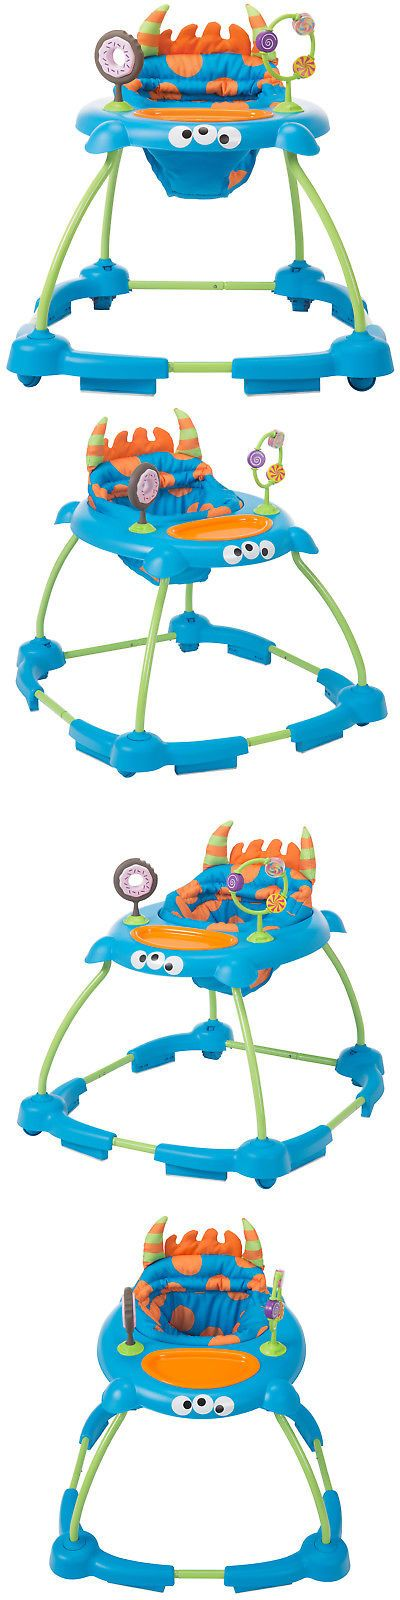 Walkers 134282: Cosco Simple Steps Interactive Baby Walker, Silly Sweet Tooth Monster -> BUY IT NOW ONLY: $39.99 on eBay!